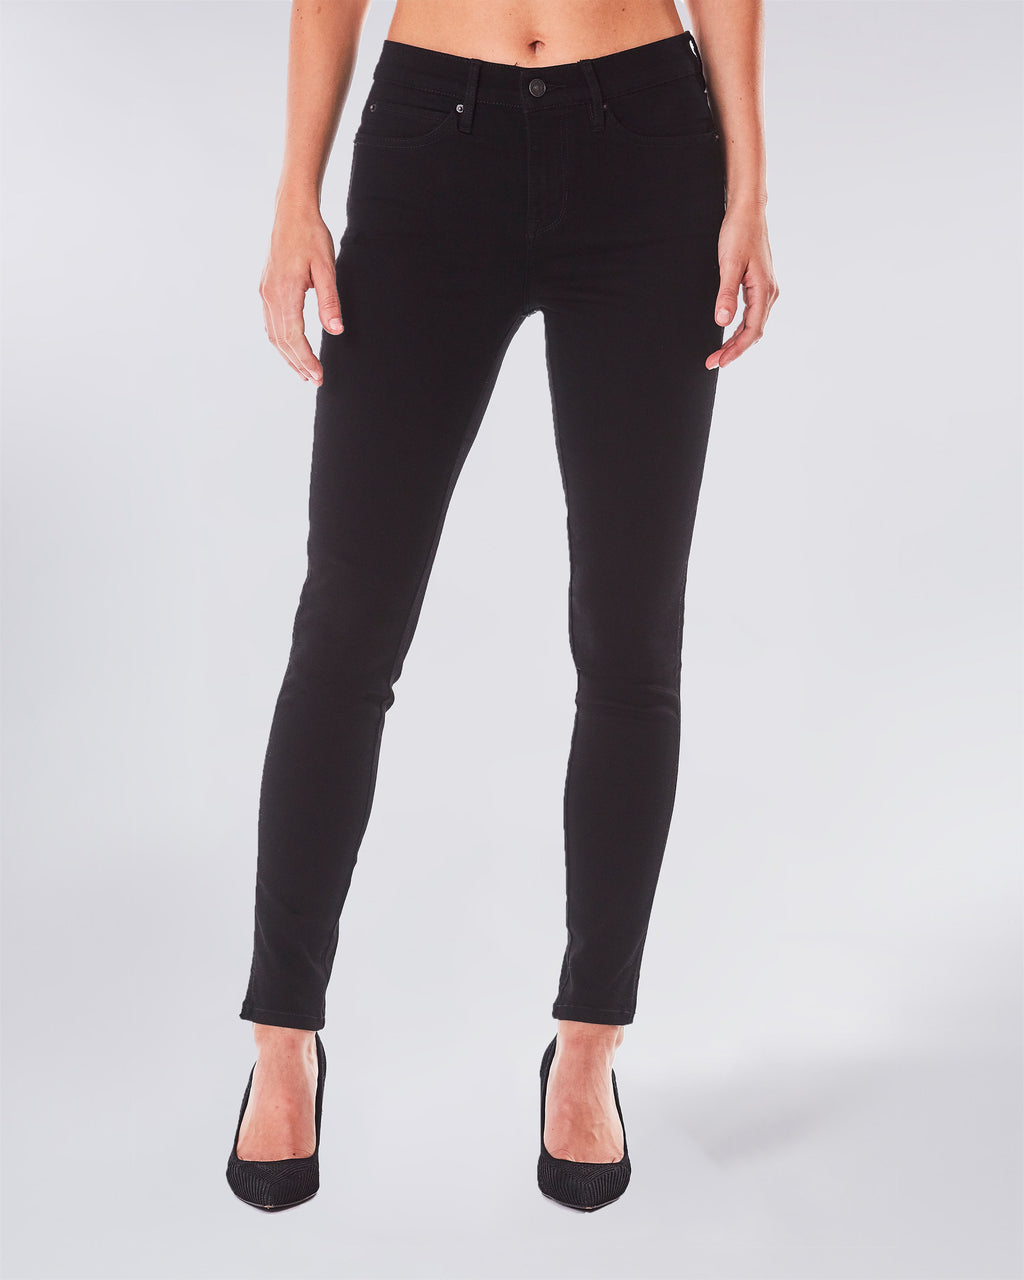 NJ0162S - SOHO HIGH RISE SKINNY - bottoms - denim - This skinny high rise jean is a classic and extremely flattering on every body type. Complete with Lycra� Beauty